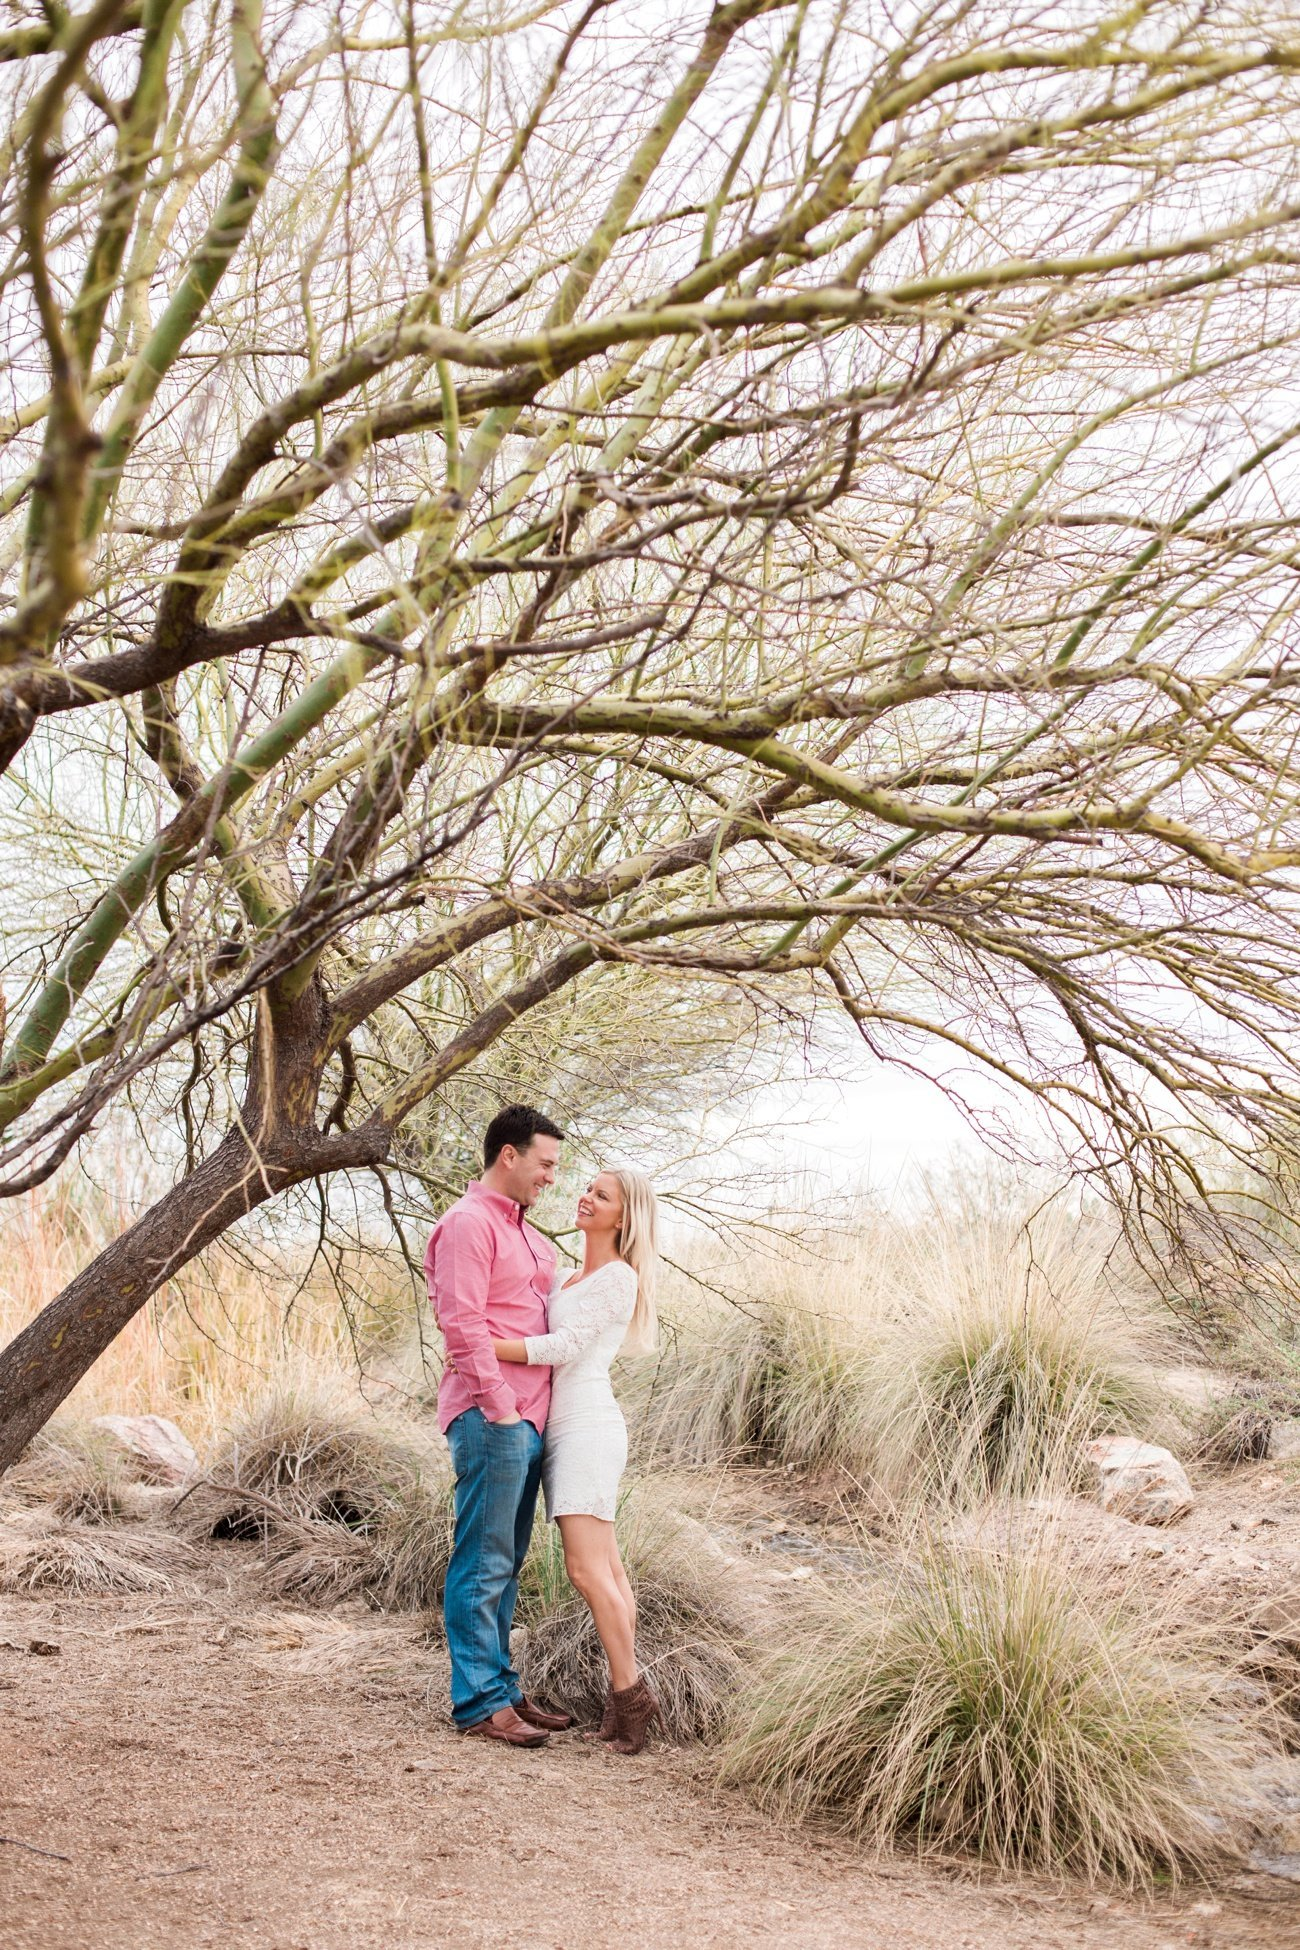 Engagements Colorado Springs Engagement Photographer Wedding Photos Pictures Portraits Arizona CO Denver Manitou Springs Scottsdale AZ 2016-06-27_0056